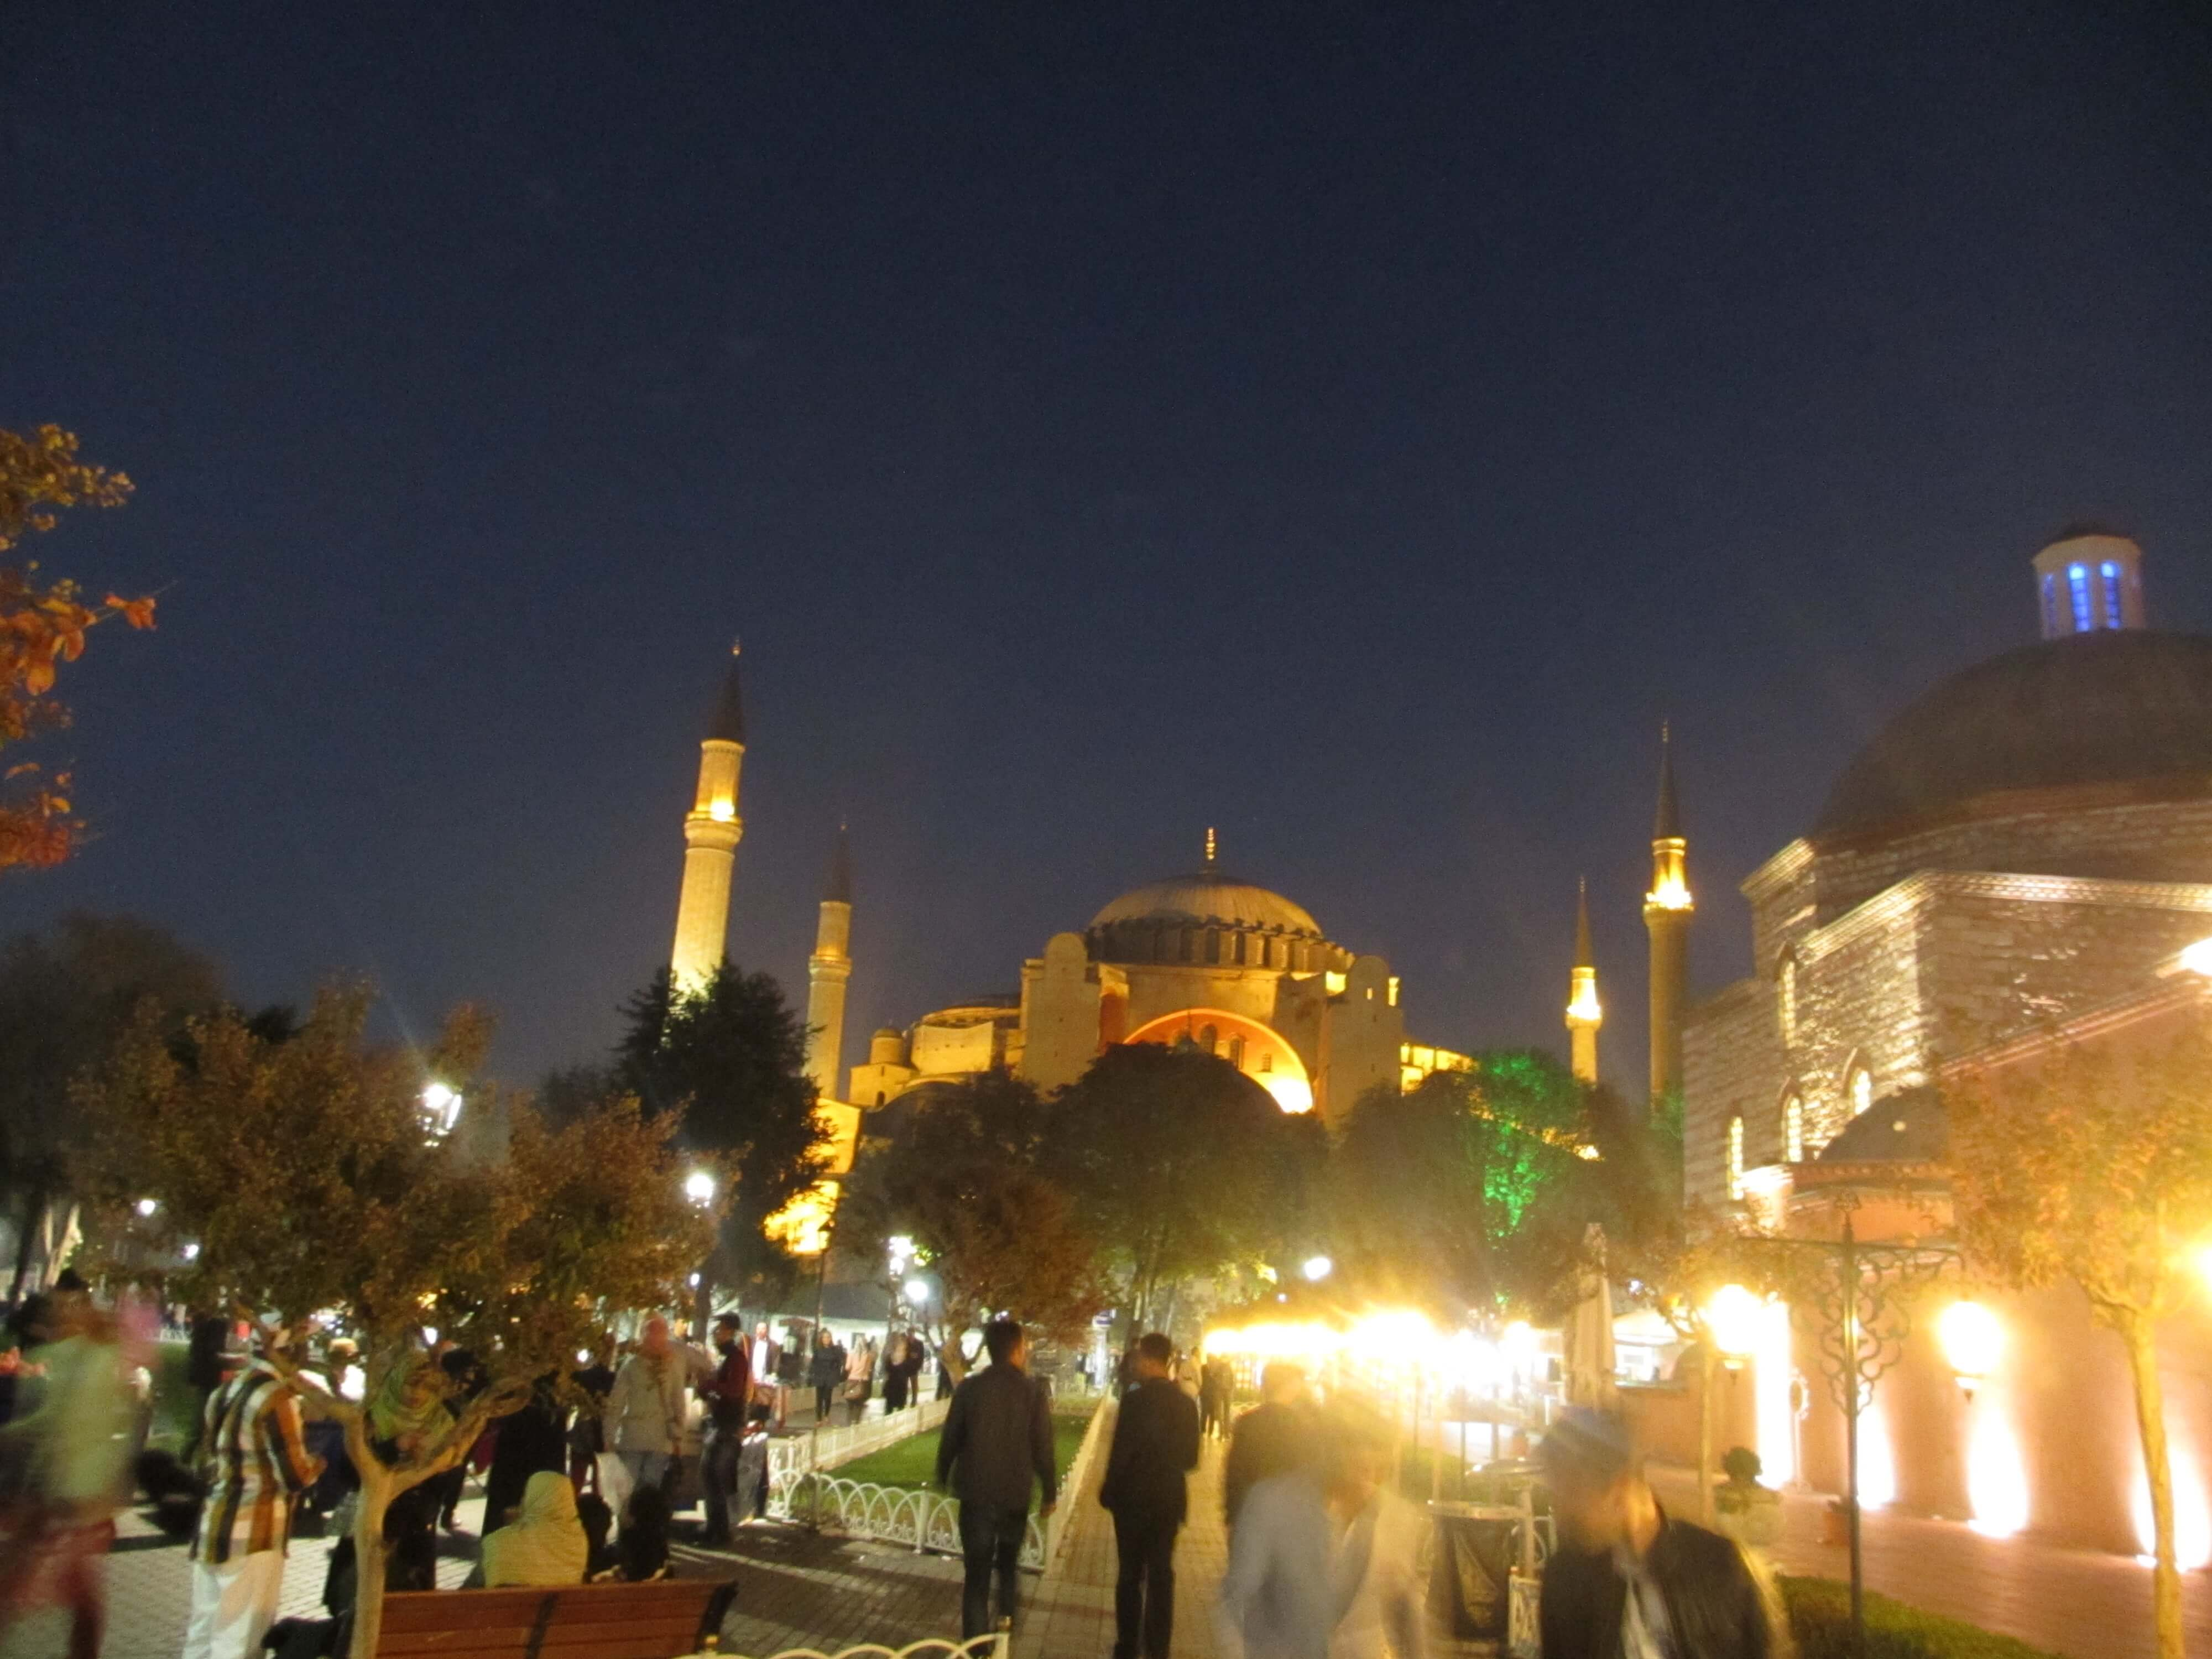 travel, travel tips, travel planning, Agia Sophia from the Hippodrome at night, Istanbul